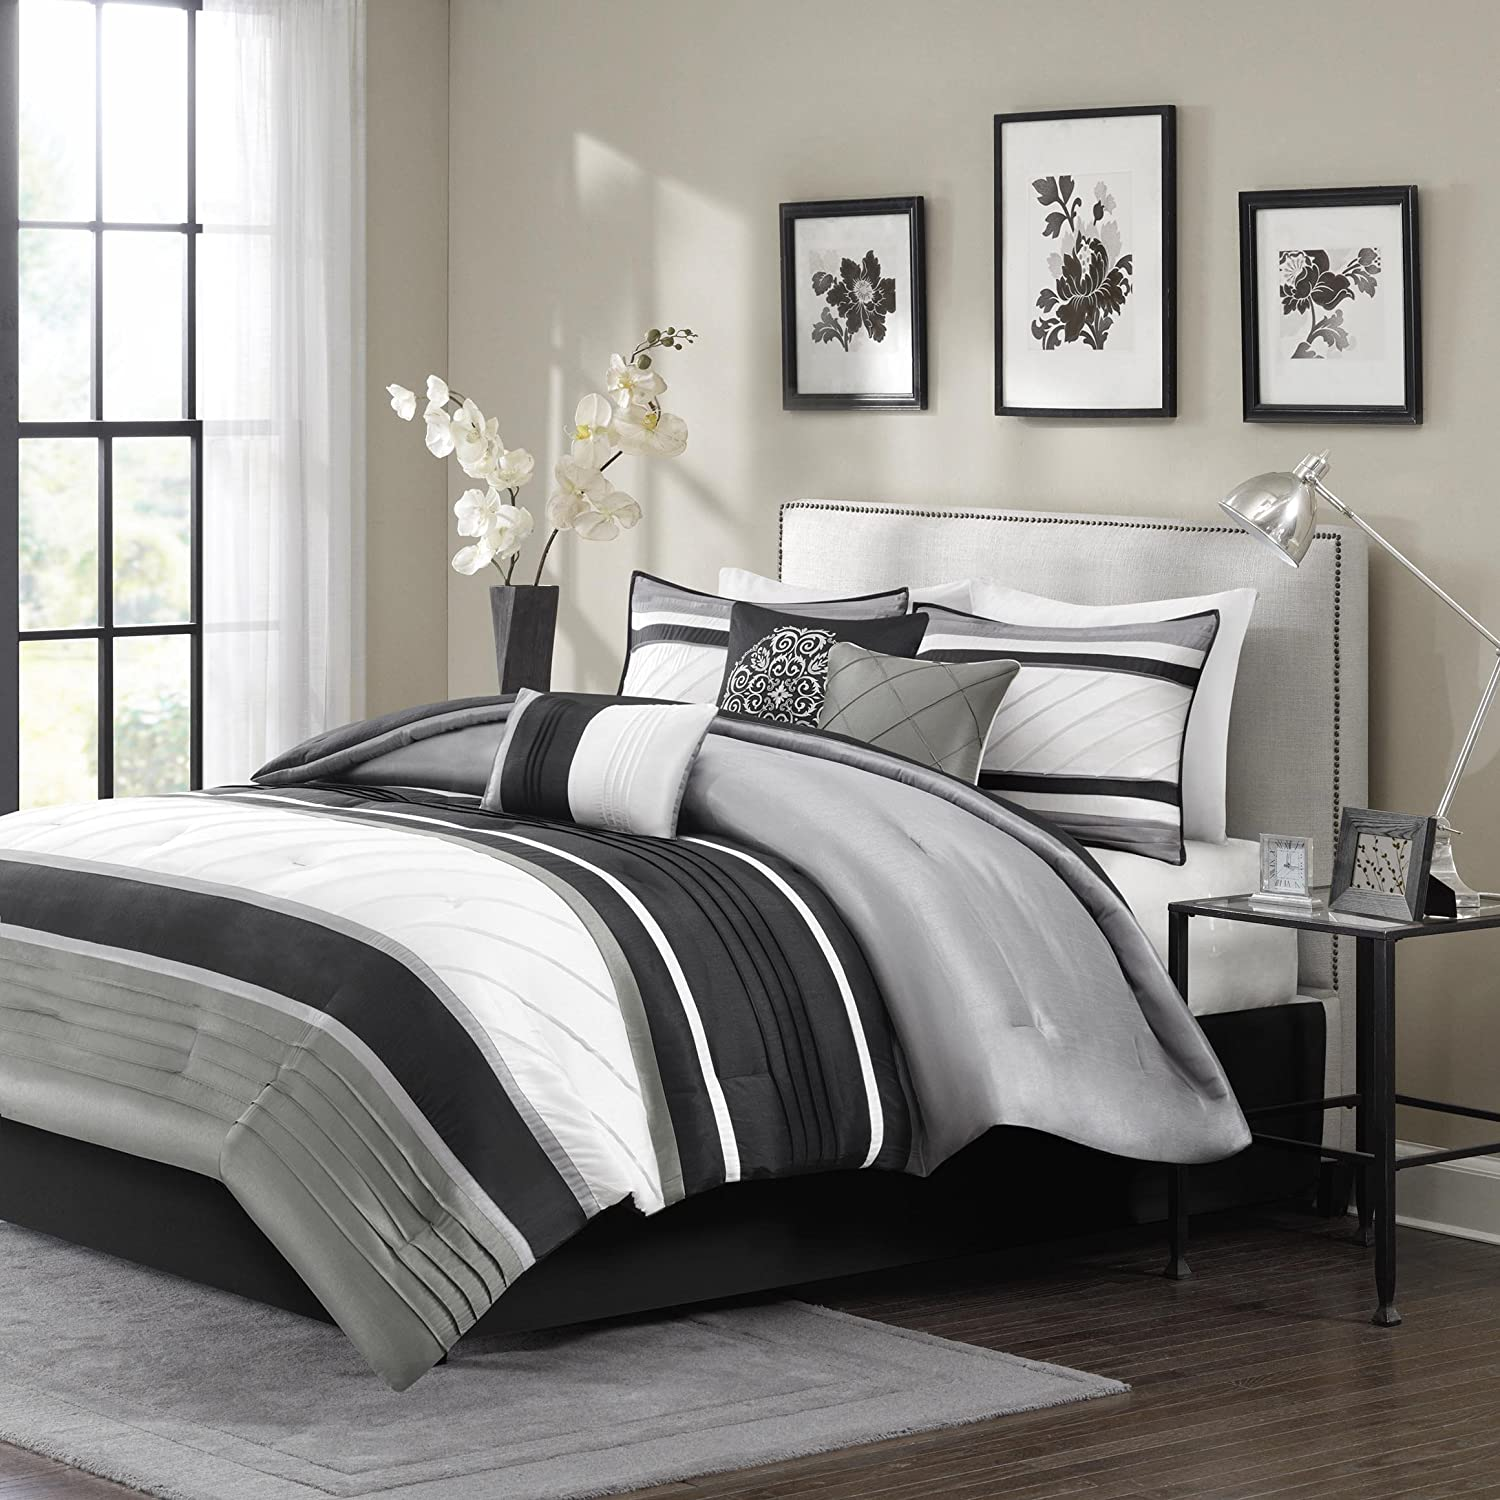 retro bedding window grey teal design bedroom stripe black gray ideas sets wooden and painted simple with tall queen headboard comforter